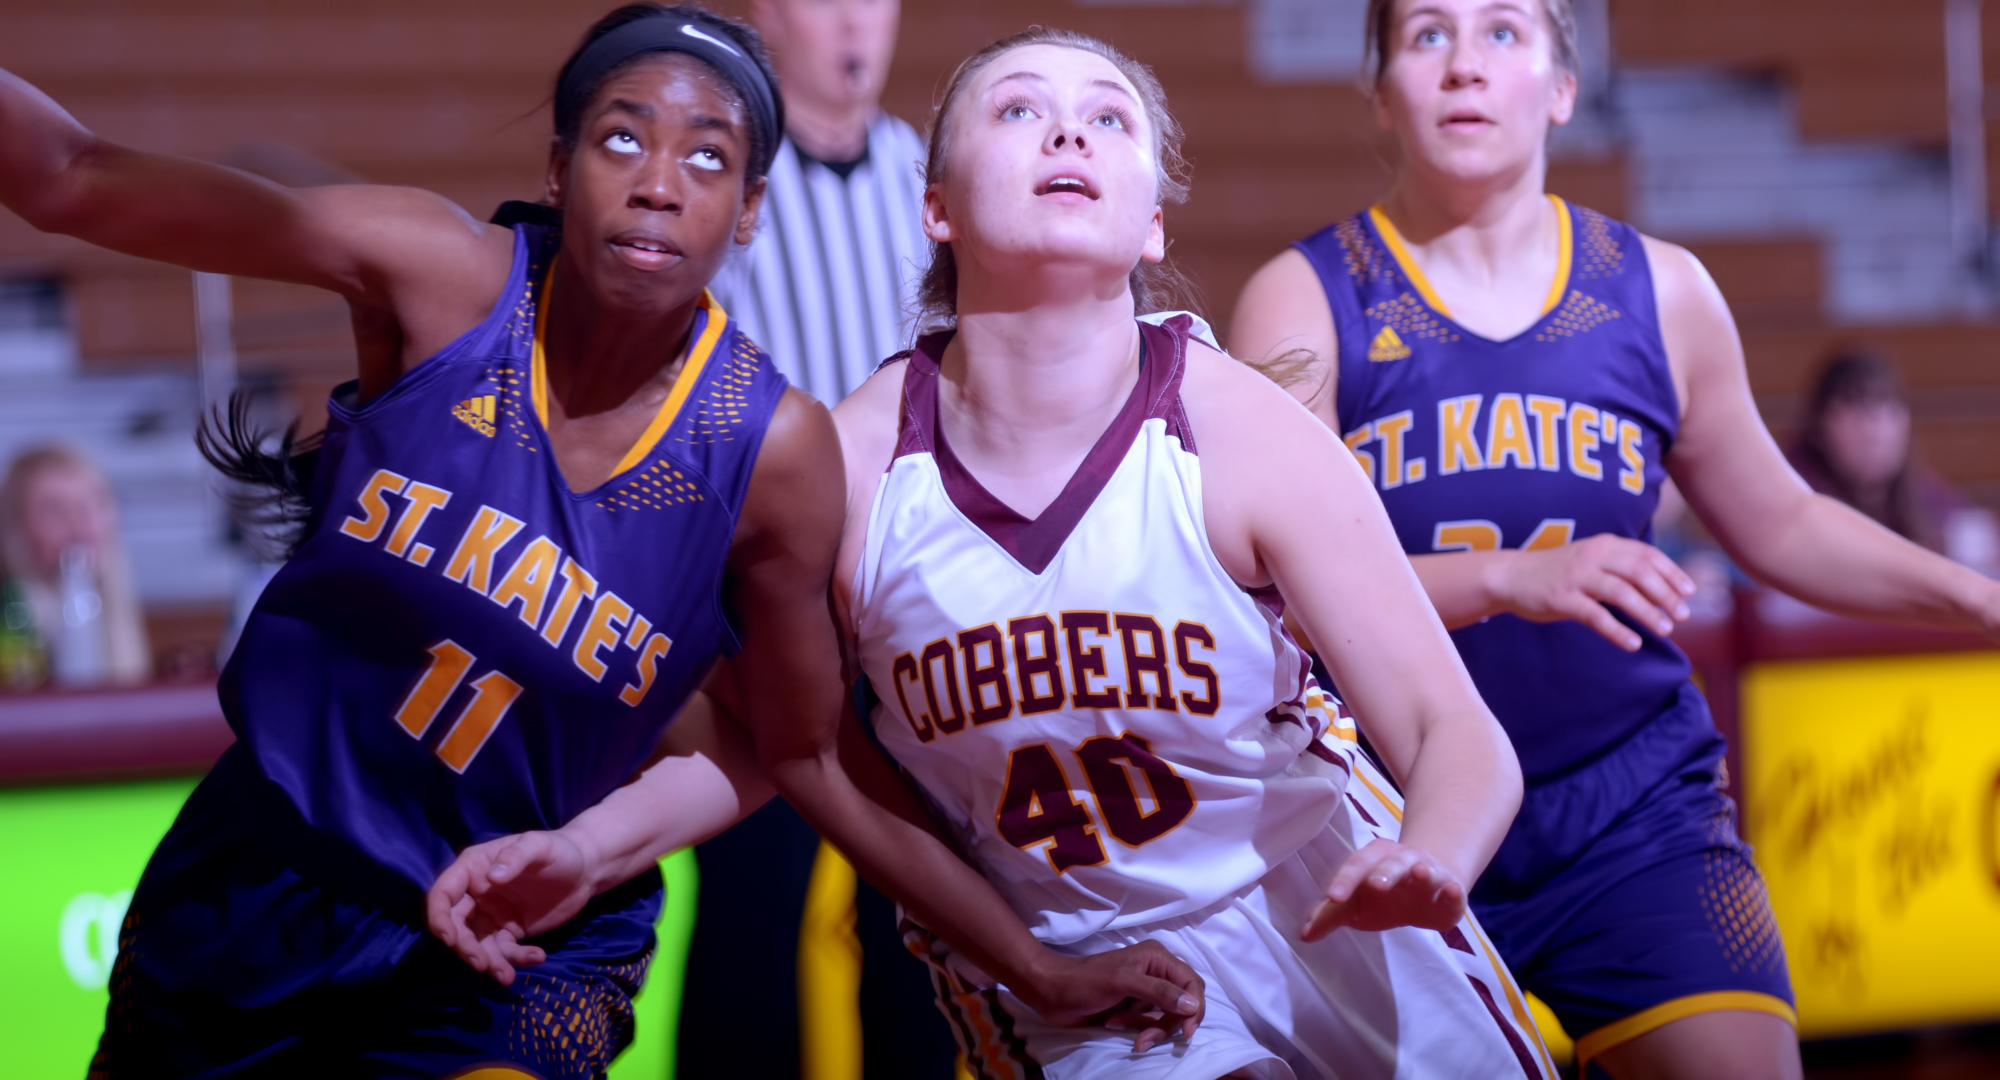 Sophomore Mira Ellefson had a game-high 14 points and helped the Cobbers beat St. Olaf 65-46 in Northfield.